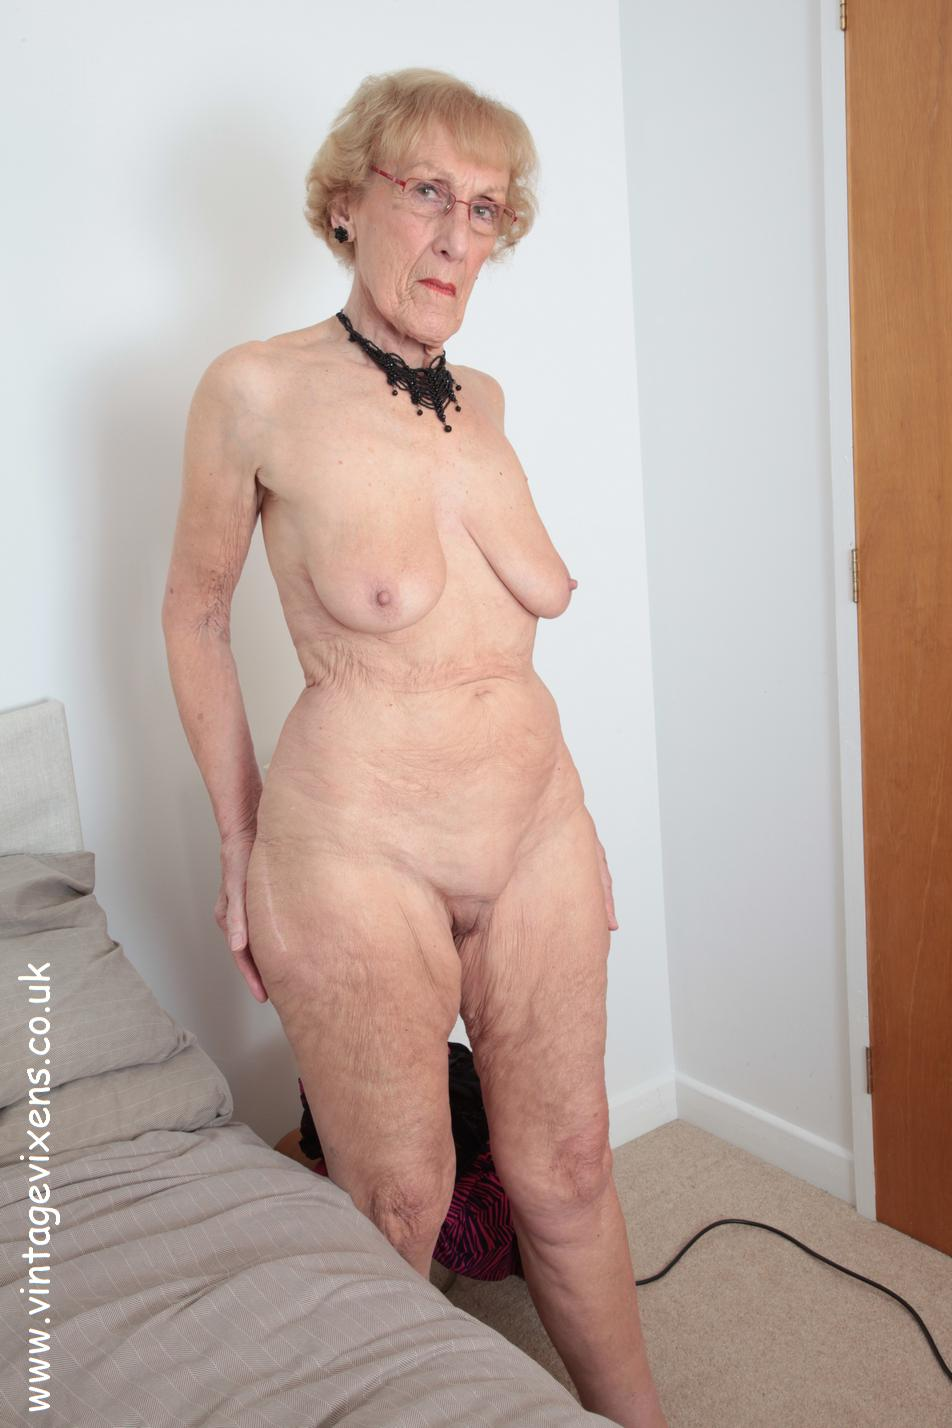 Archive Of Old Women Old Hot Grannies New Sets-9630